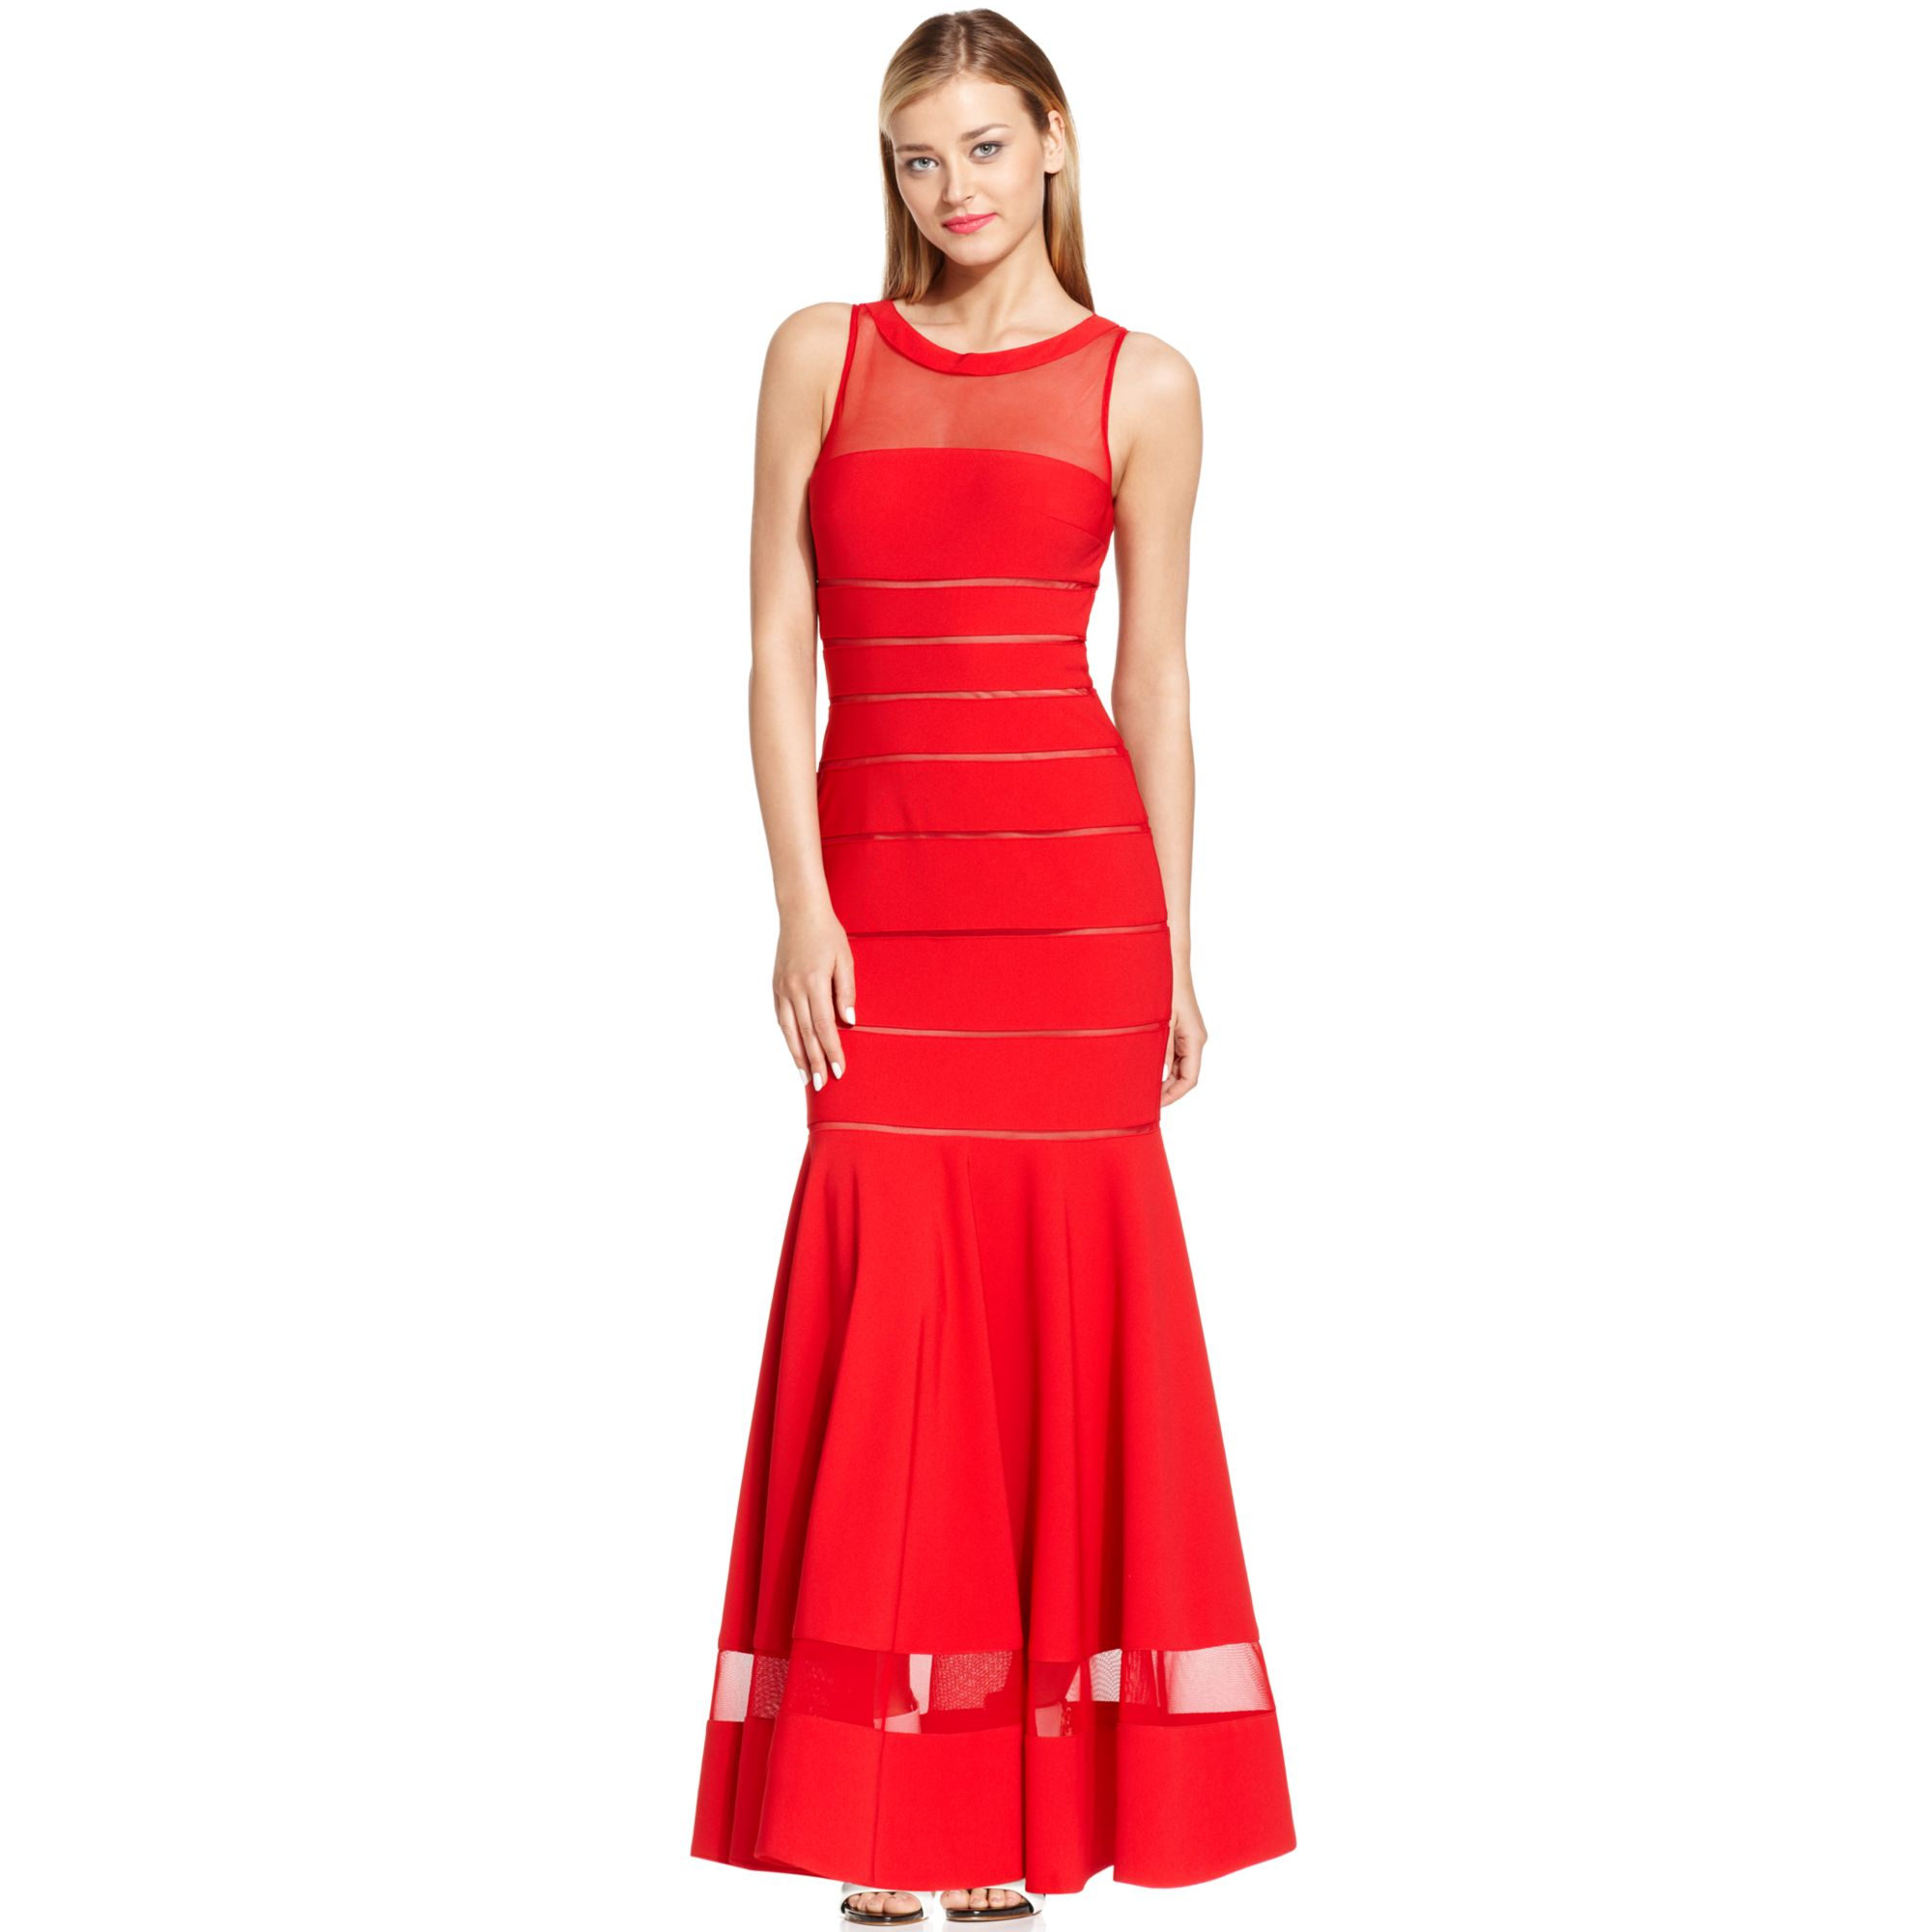 Lyst - Js Collections Illusion-stripe Mermaid Gown in Red